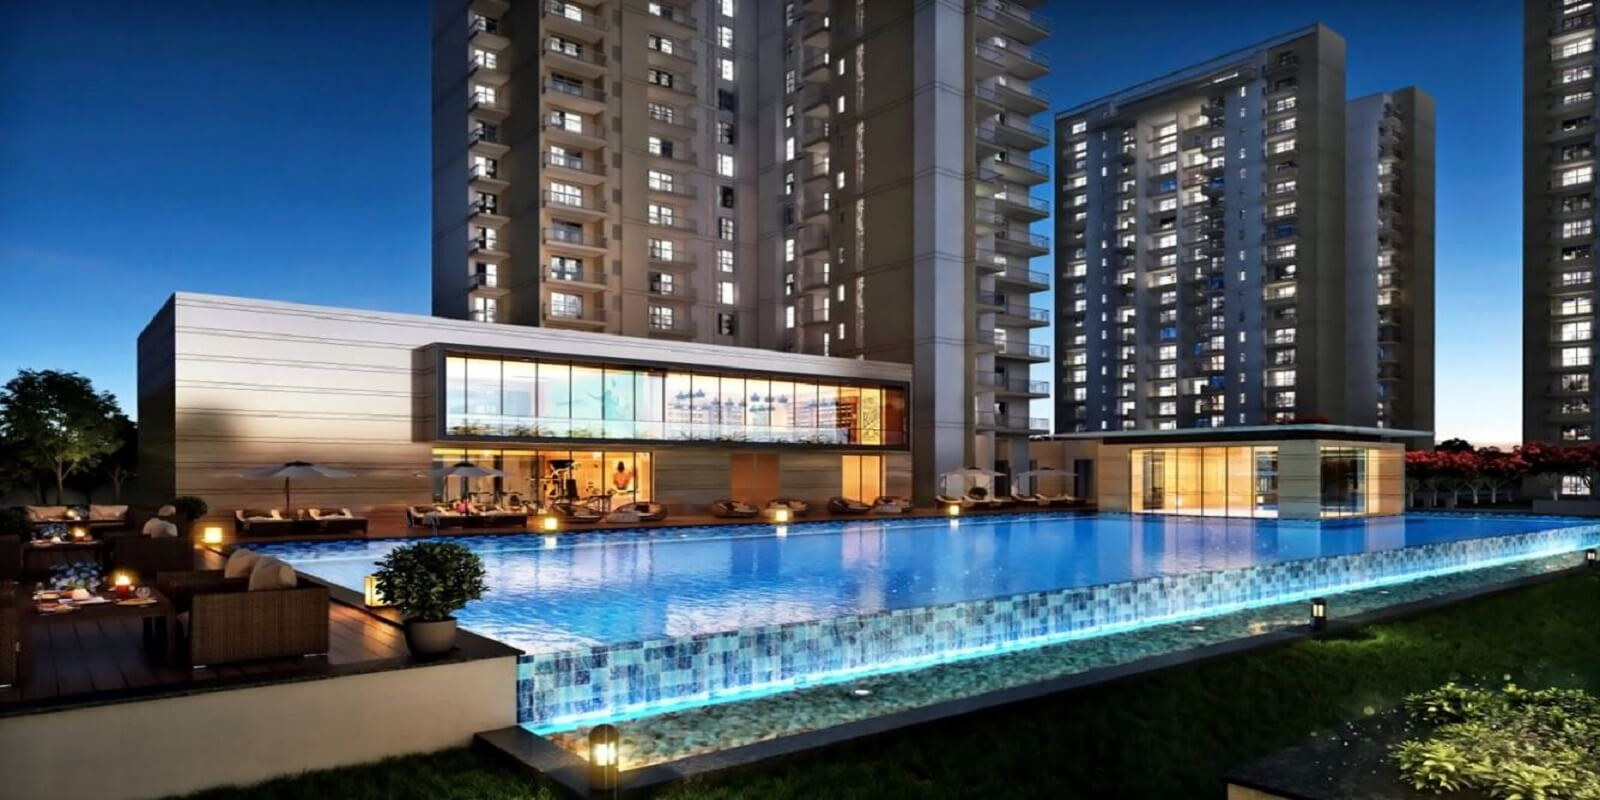 godrej solitaire project large image1